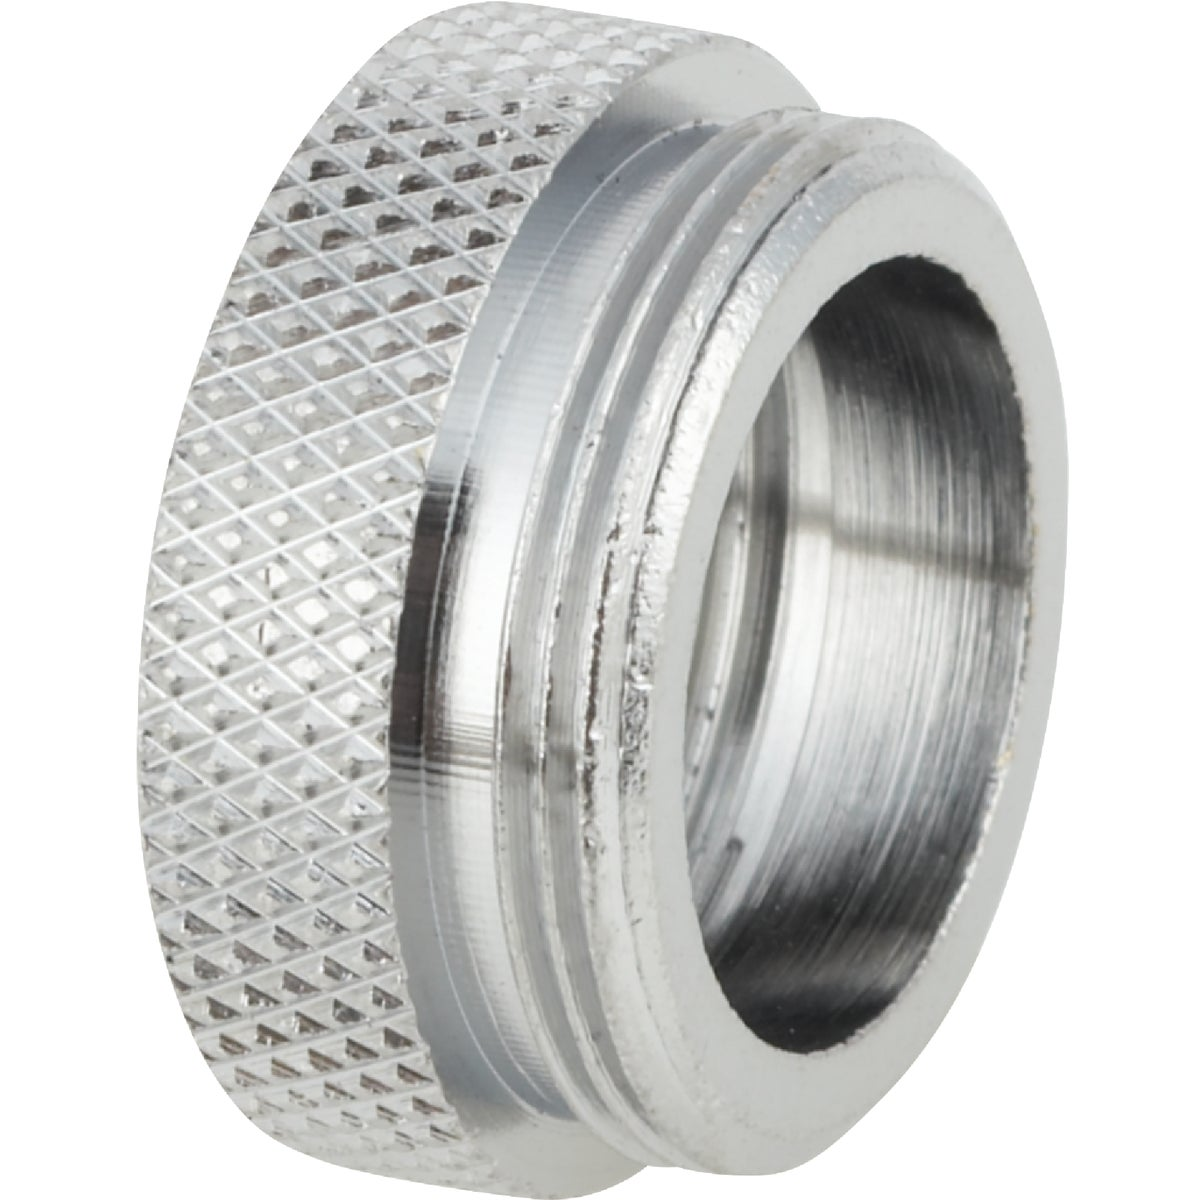 CHROME AERATOR ADAPTER - W-1143LF by Do it Best